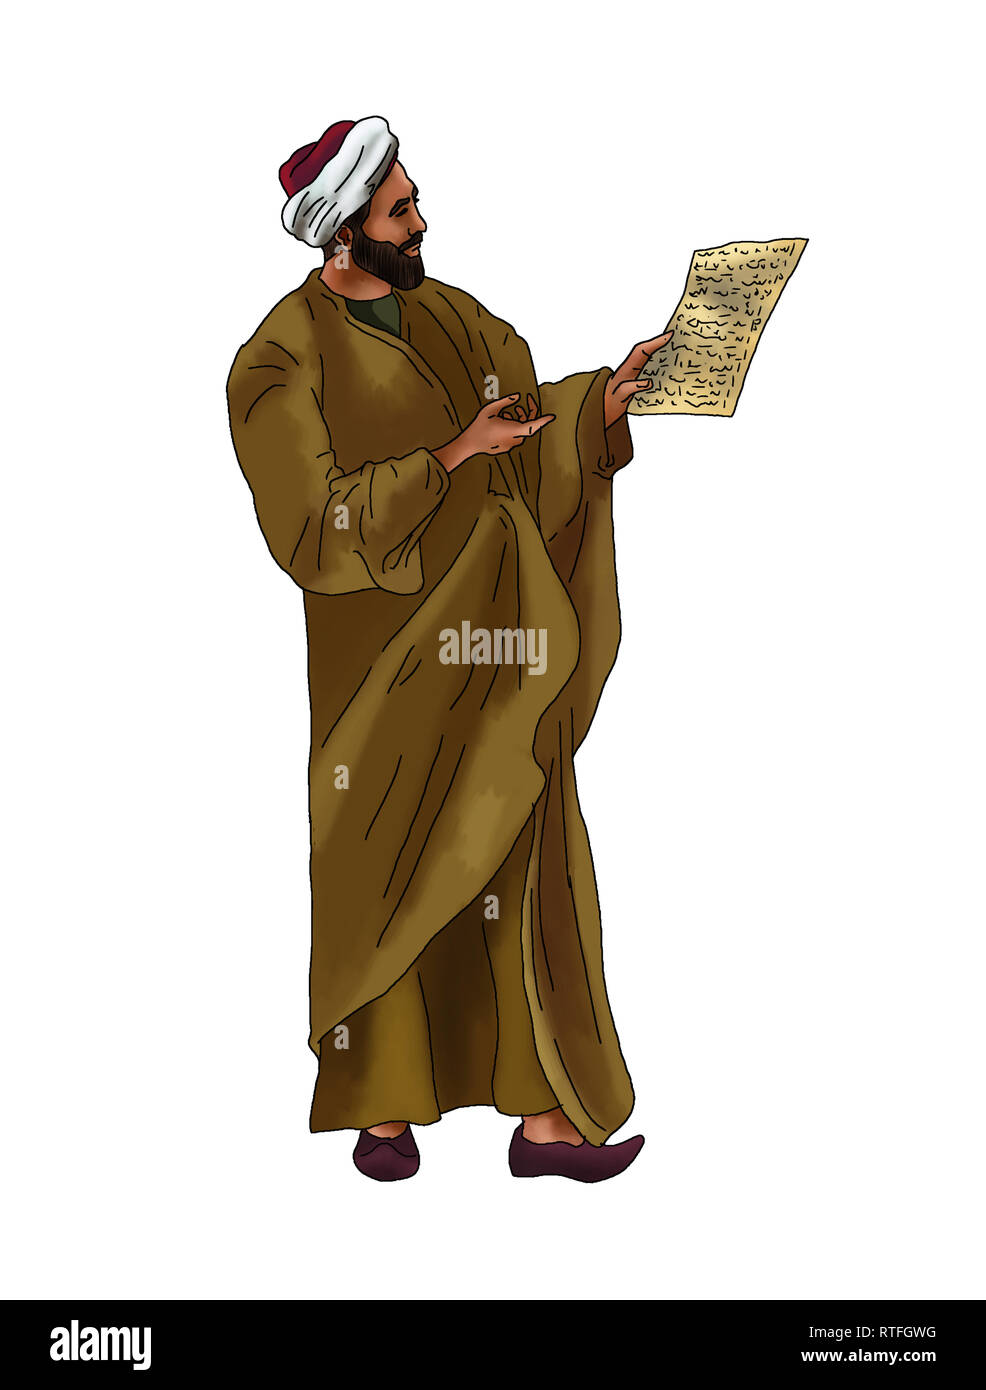 Portrait people from muslim history world - Stock Image